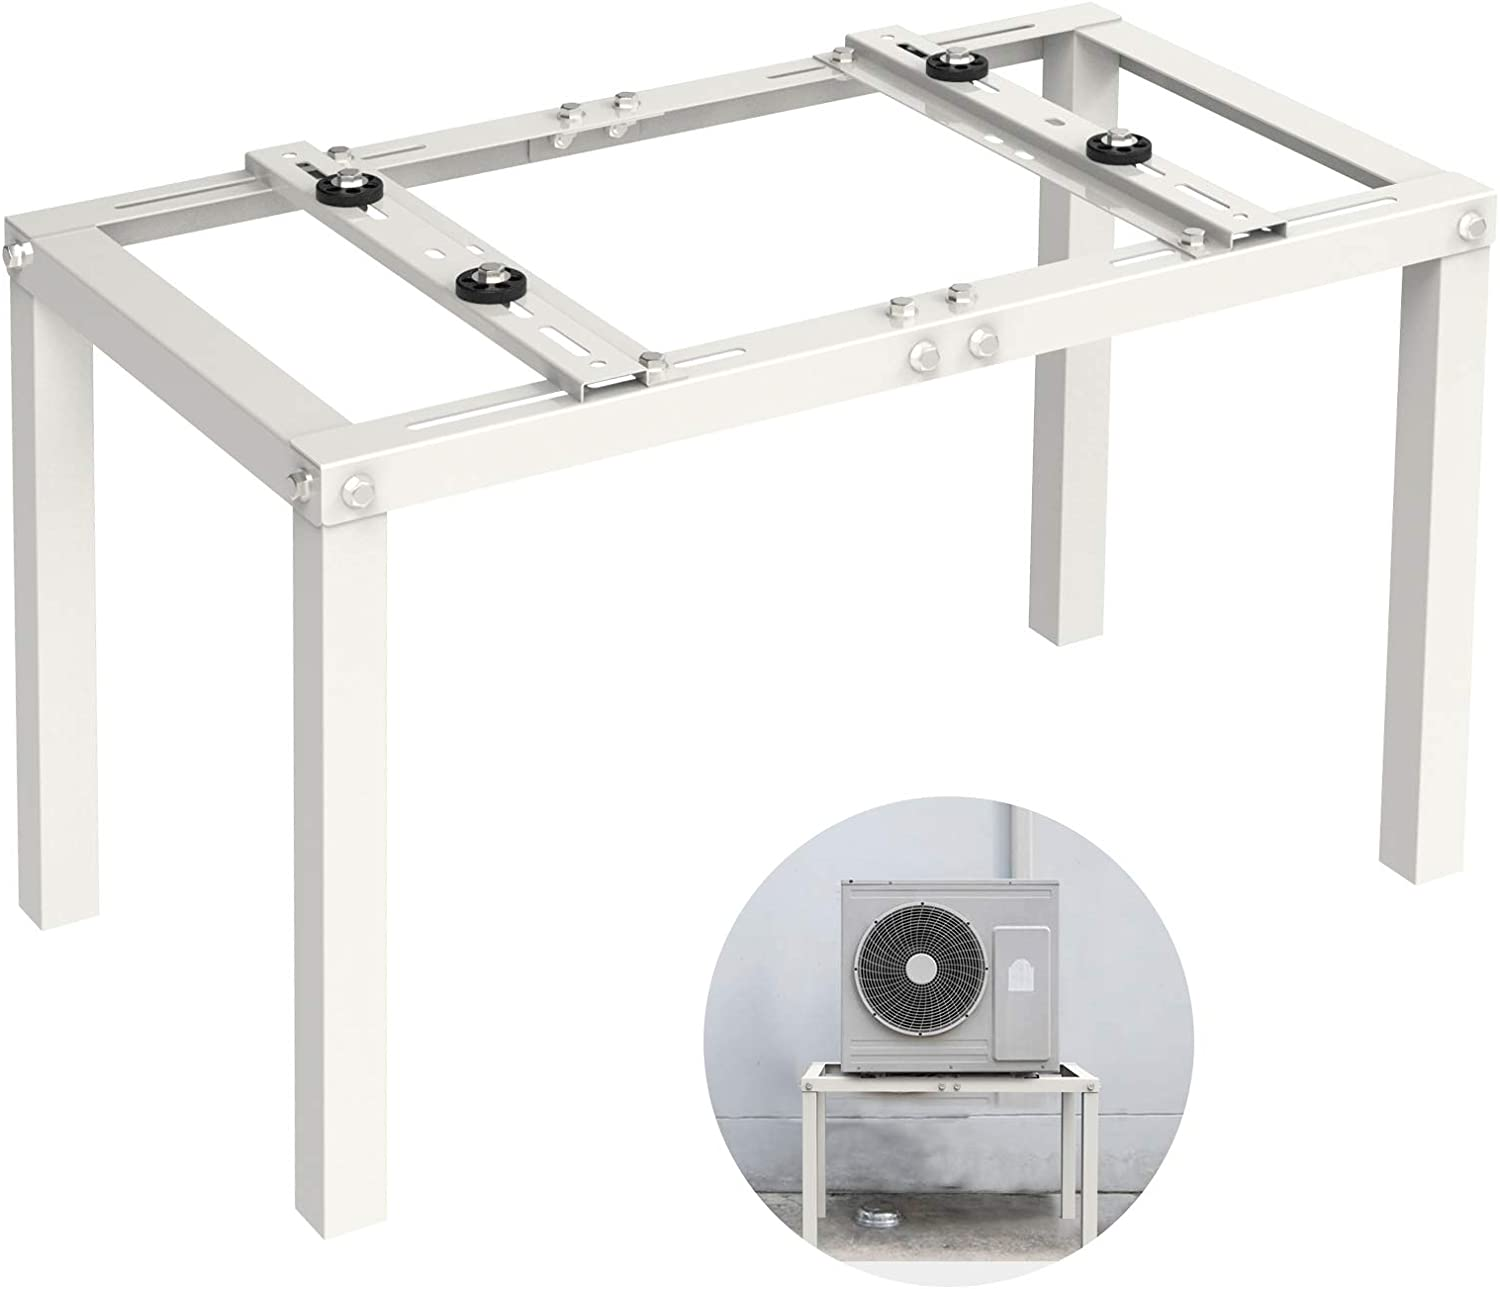 Condensor Mounting Brackets Support Jeacent Ground Stand Bracket for Mini Split Air Conditioner